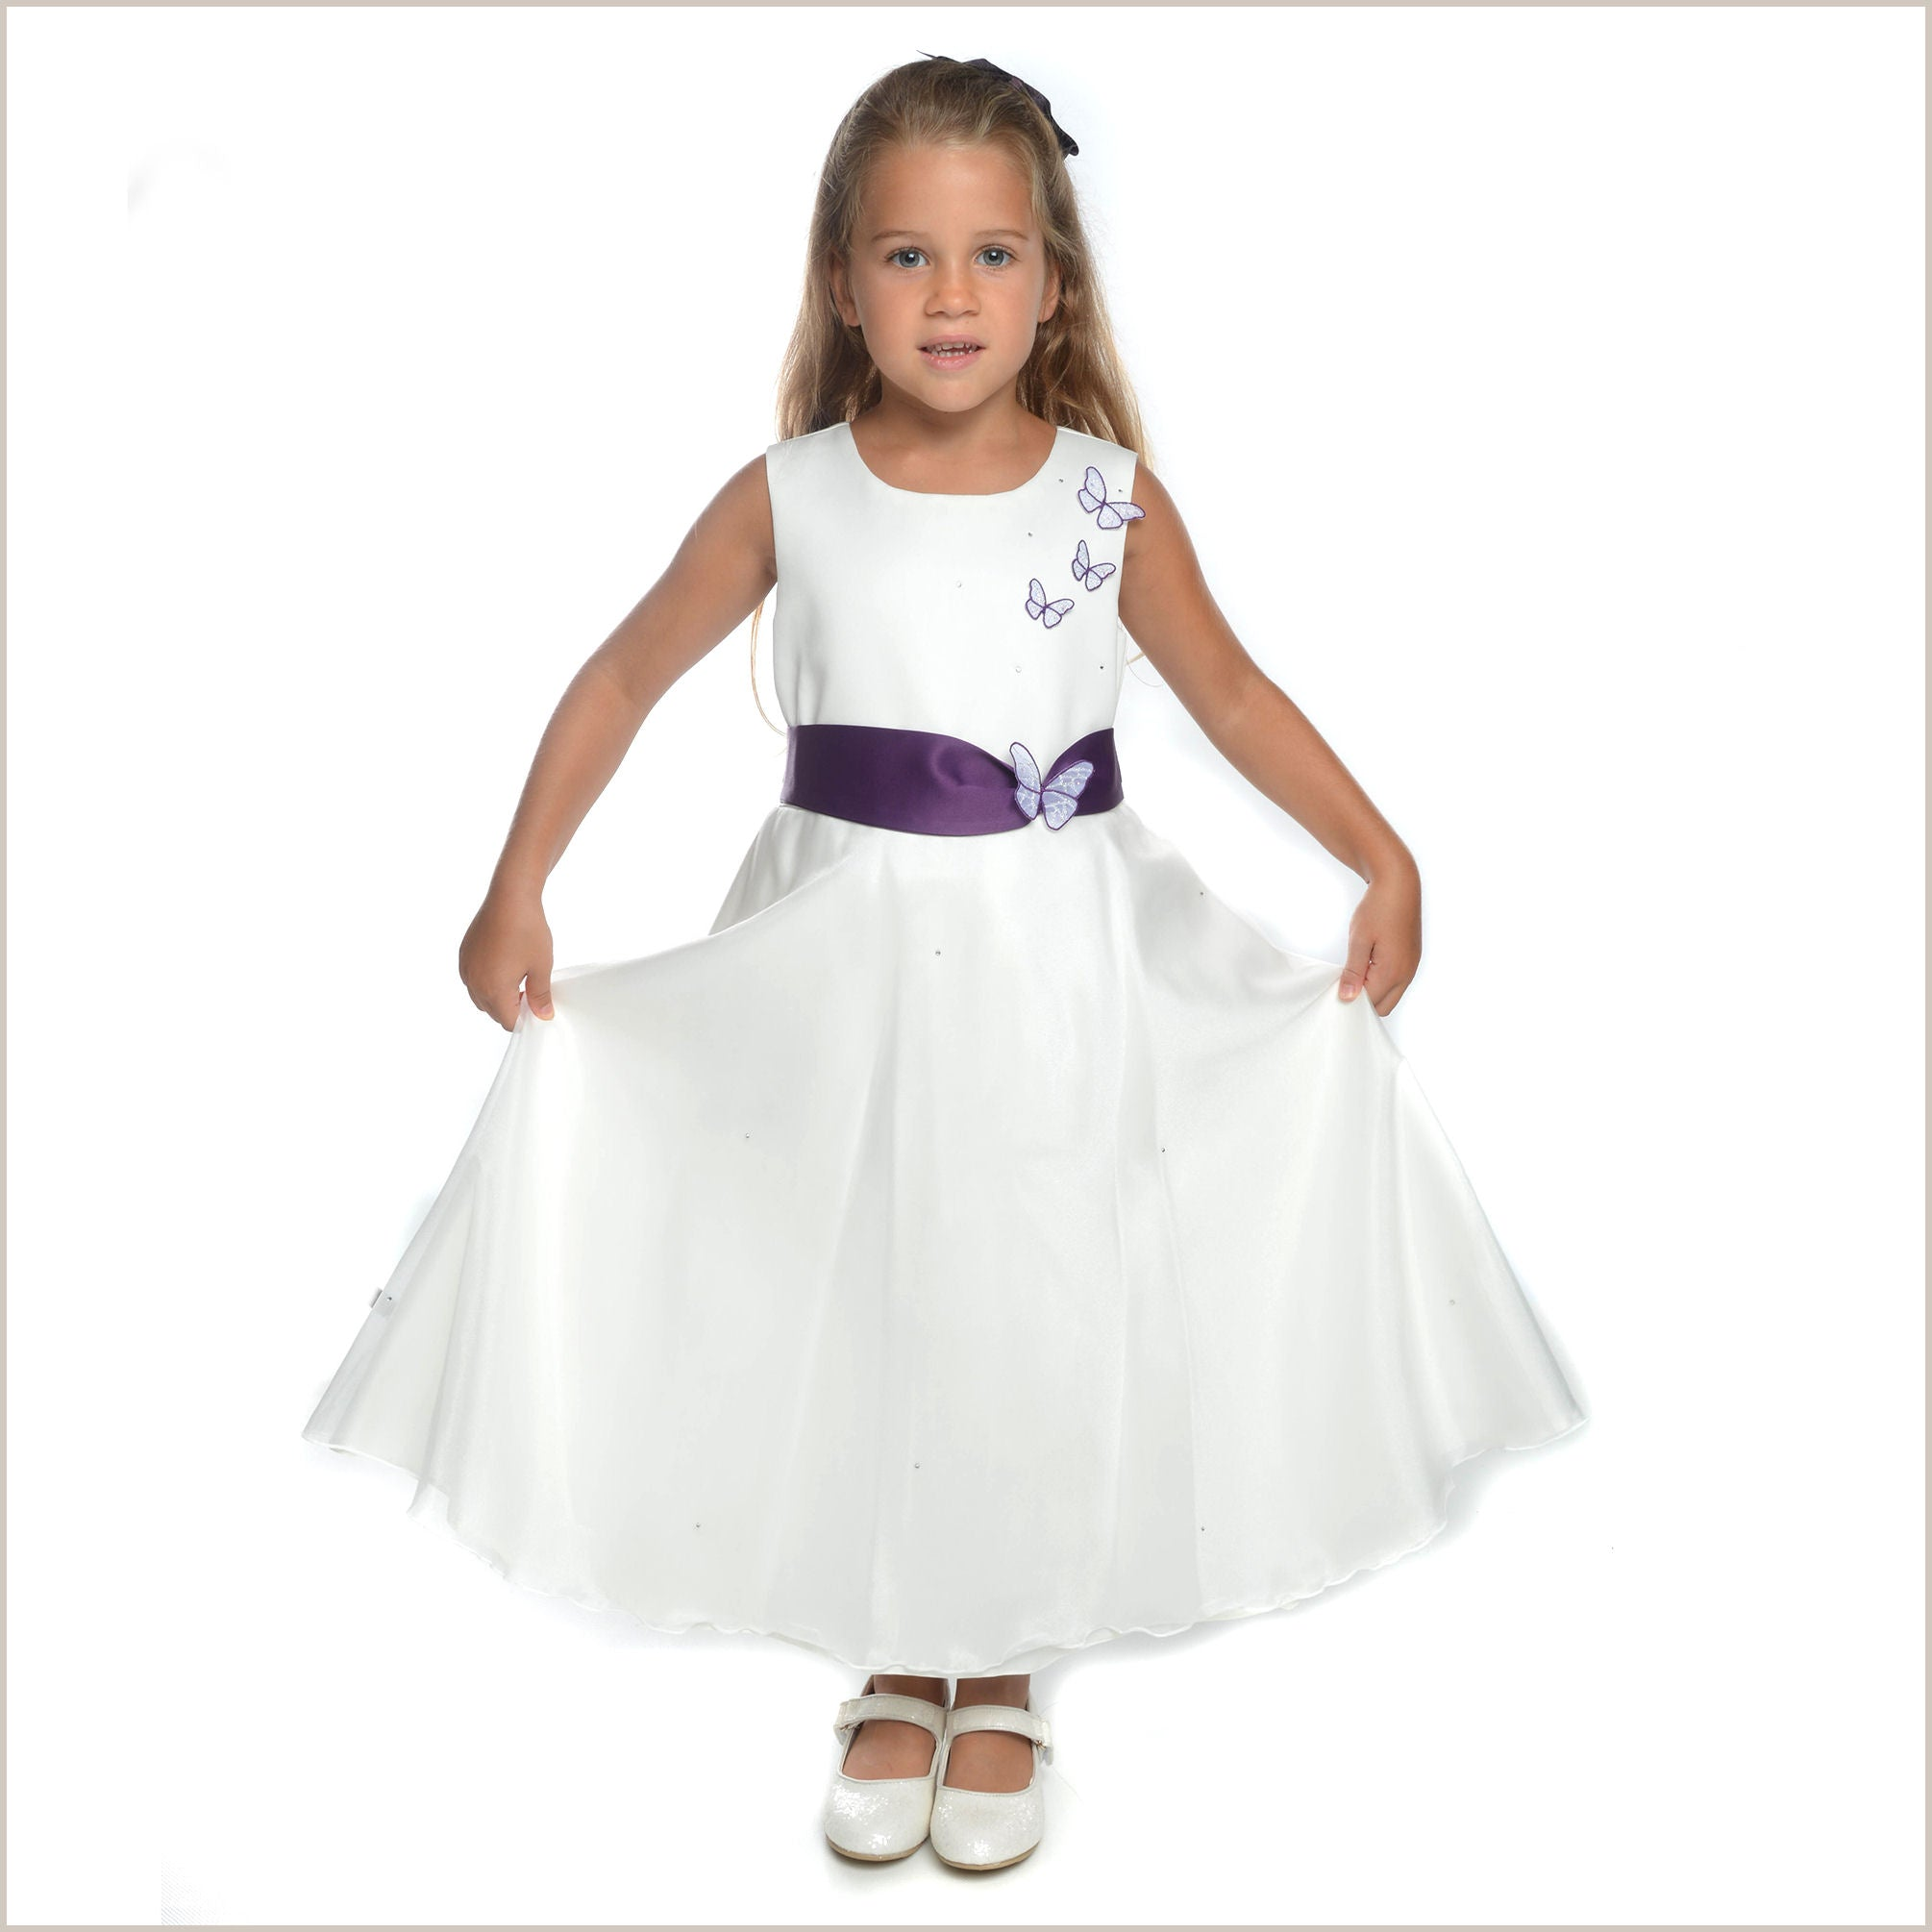 Eden butterfly flower girl dress in ivory and purple eden dress with purple sash butterflies mightylinksfo